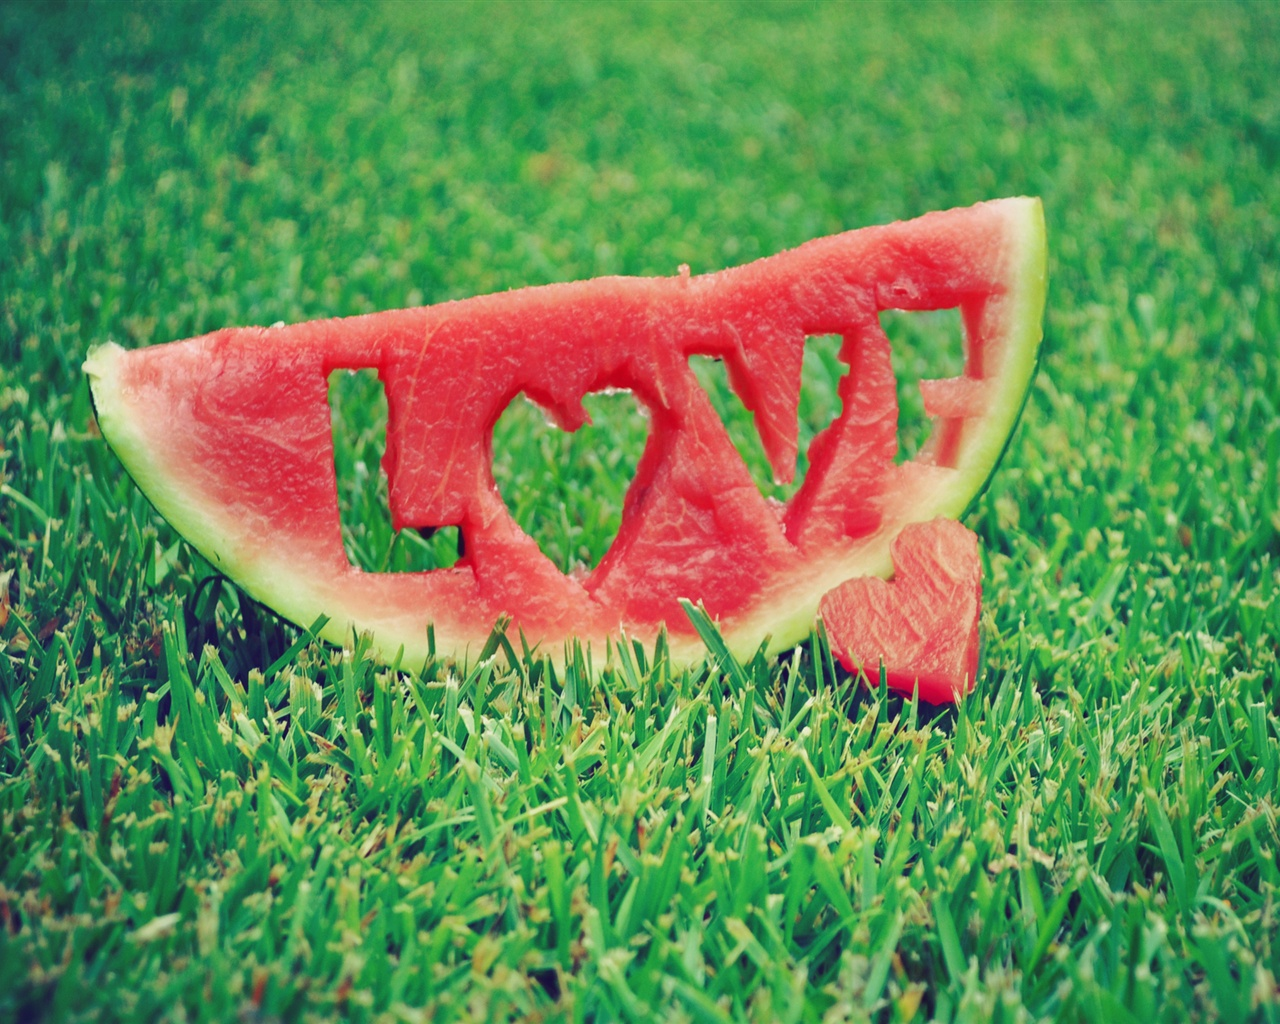 Watermelon Love Grass wallpaper - 1280x1024